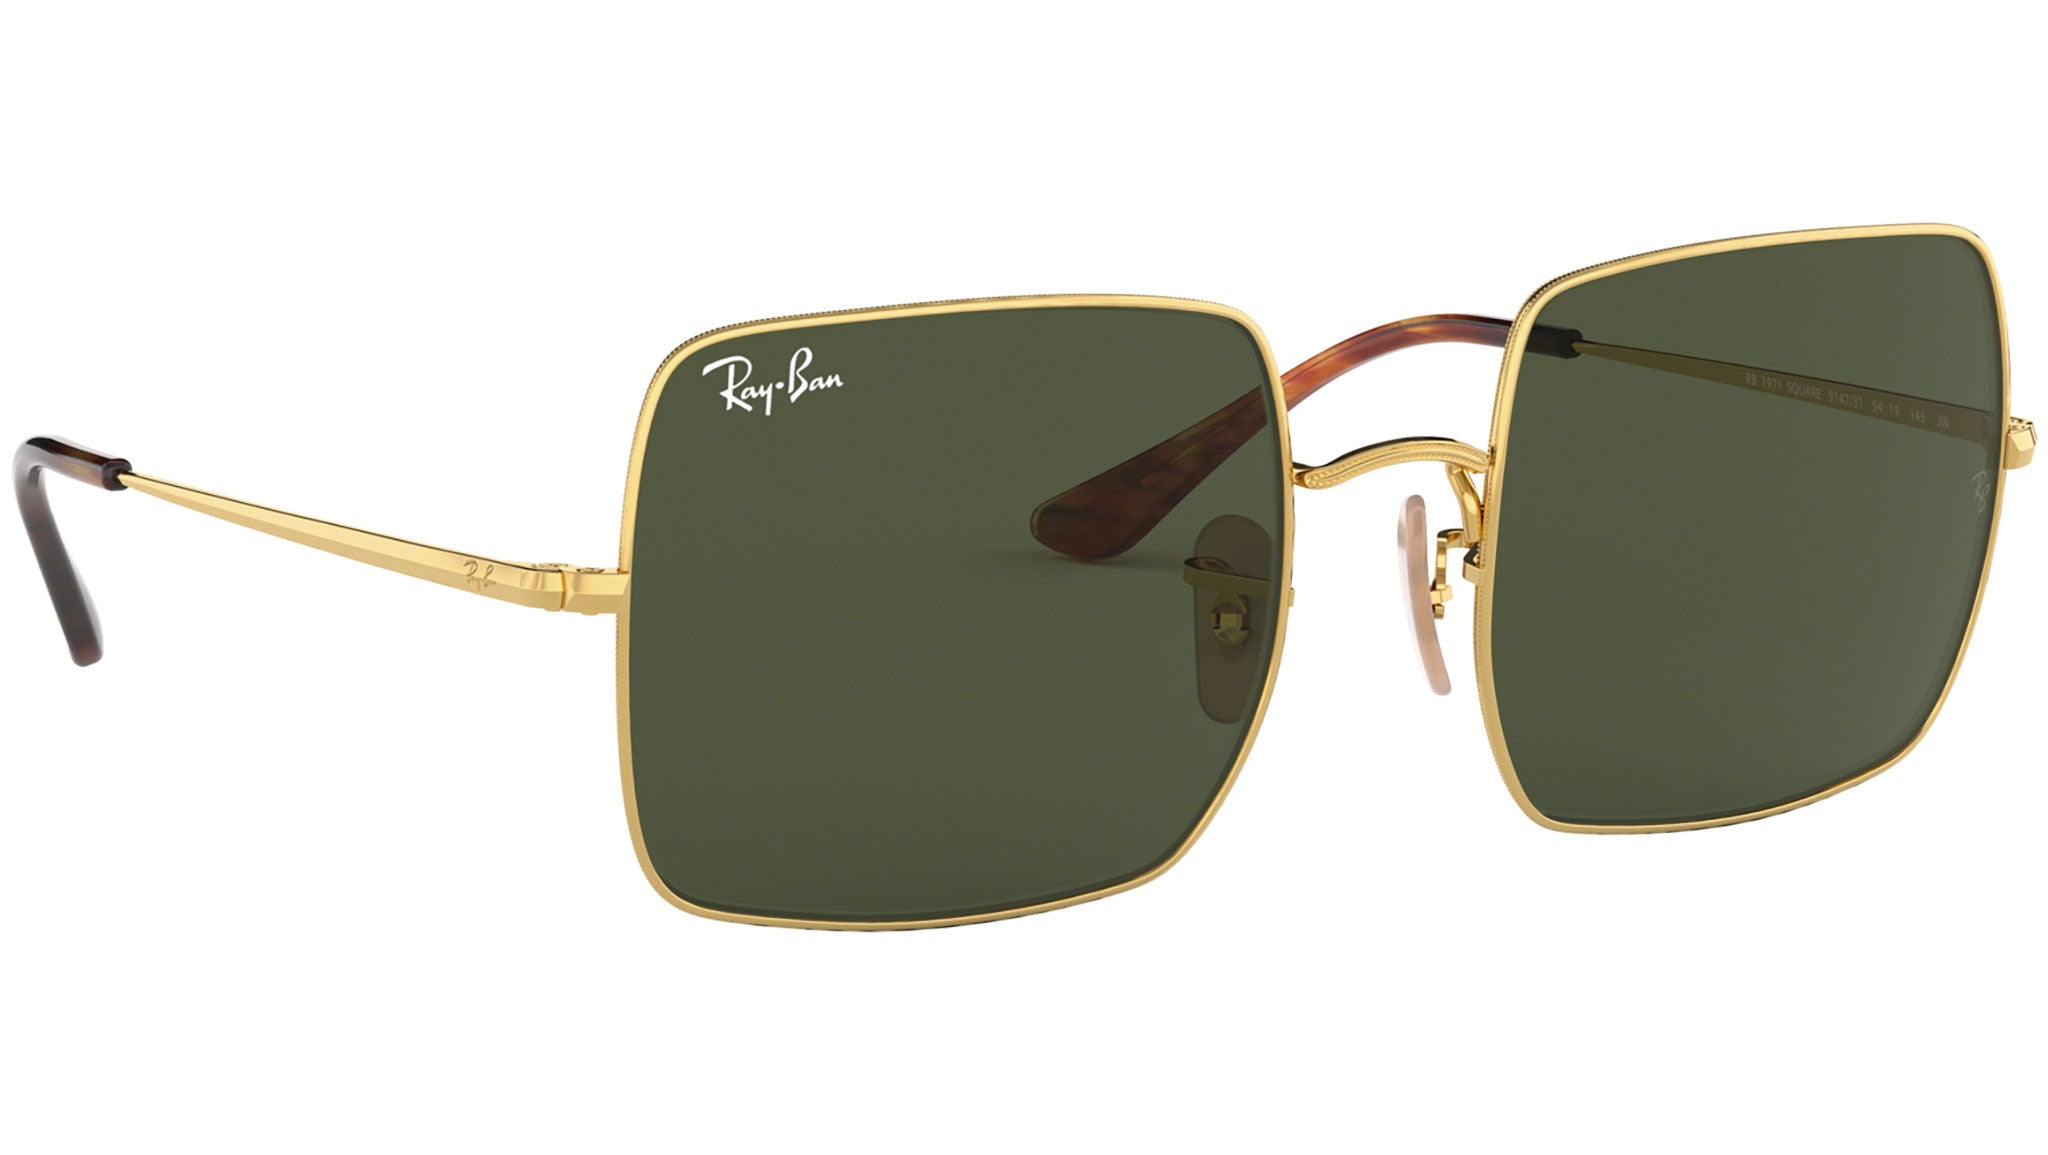 Square Classic RB1971 gold and green